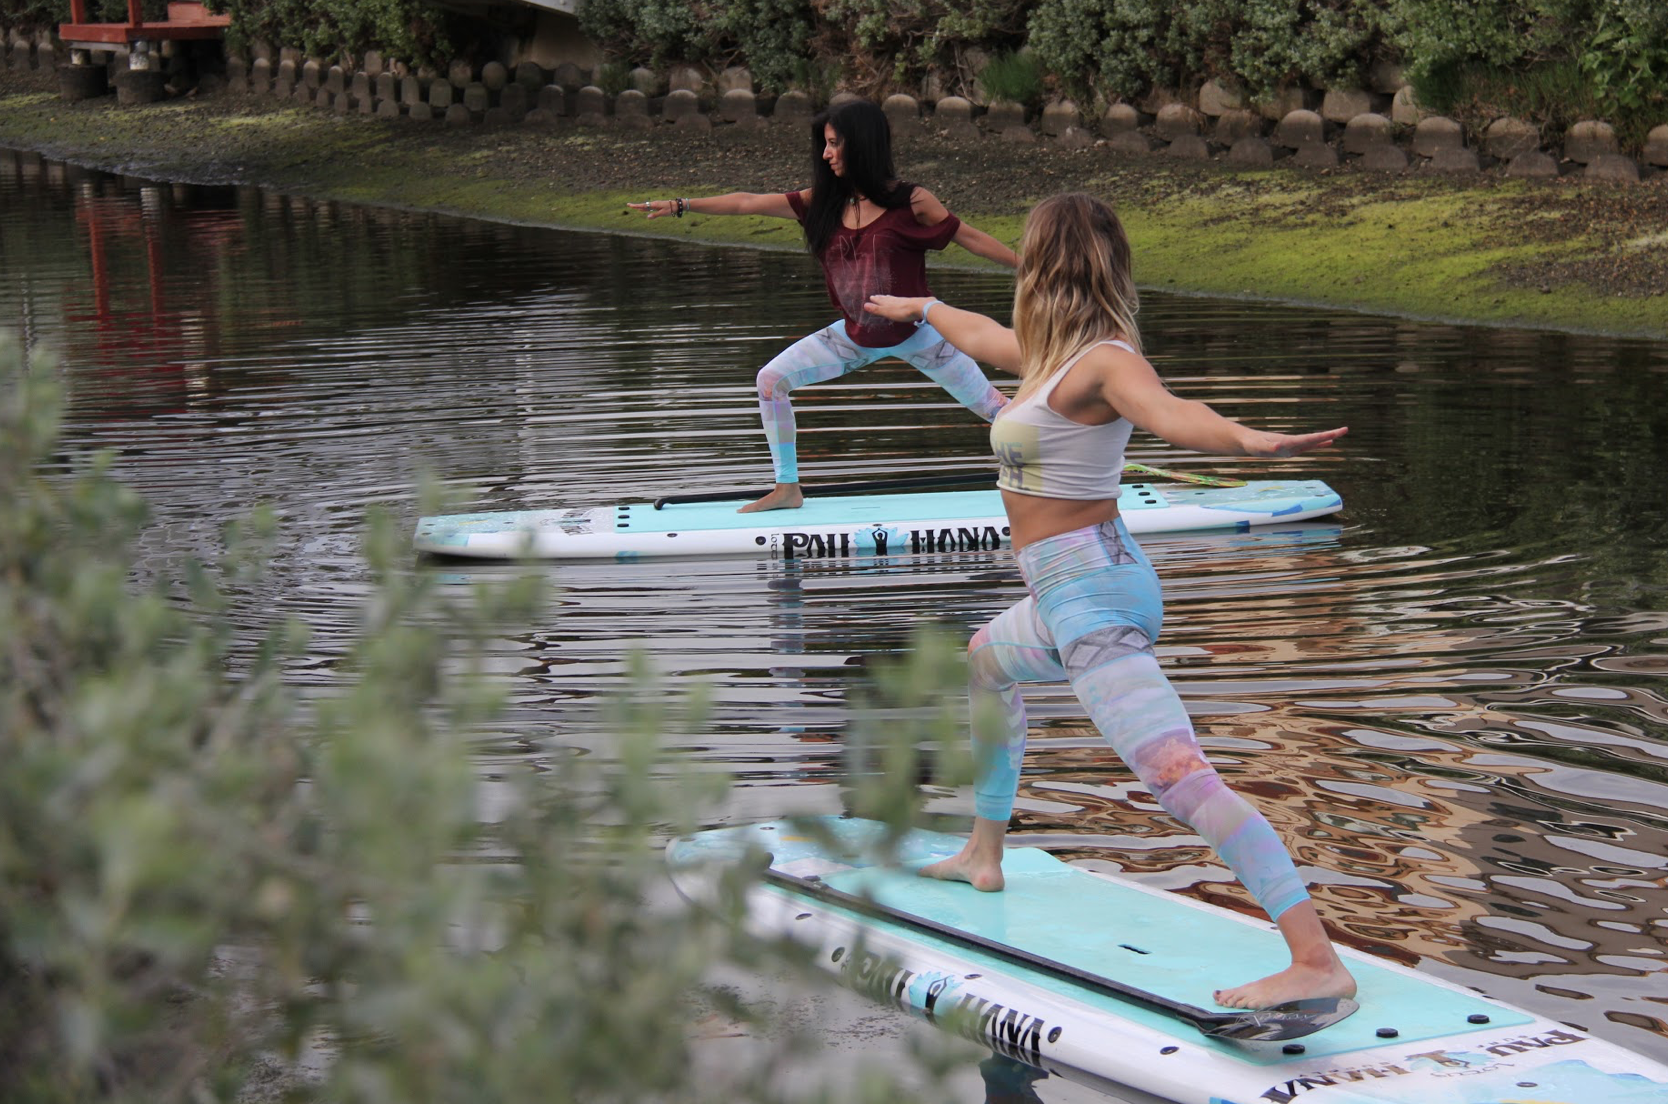 Yoga class with the Pau Hana Lotus Boards on the water